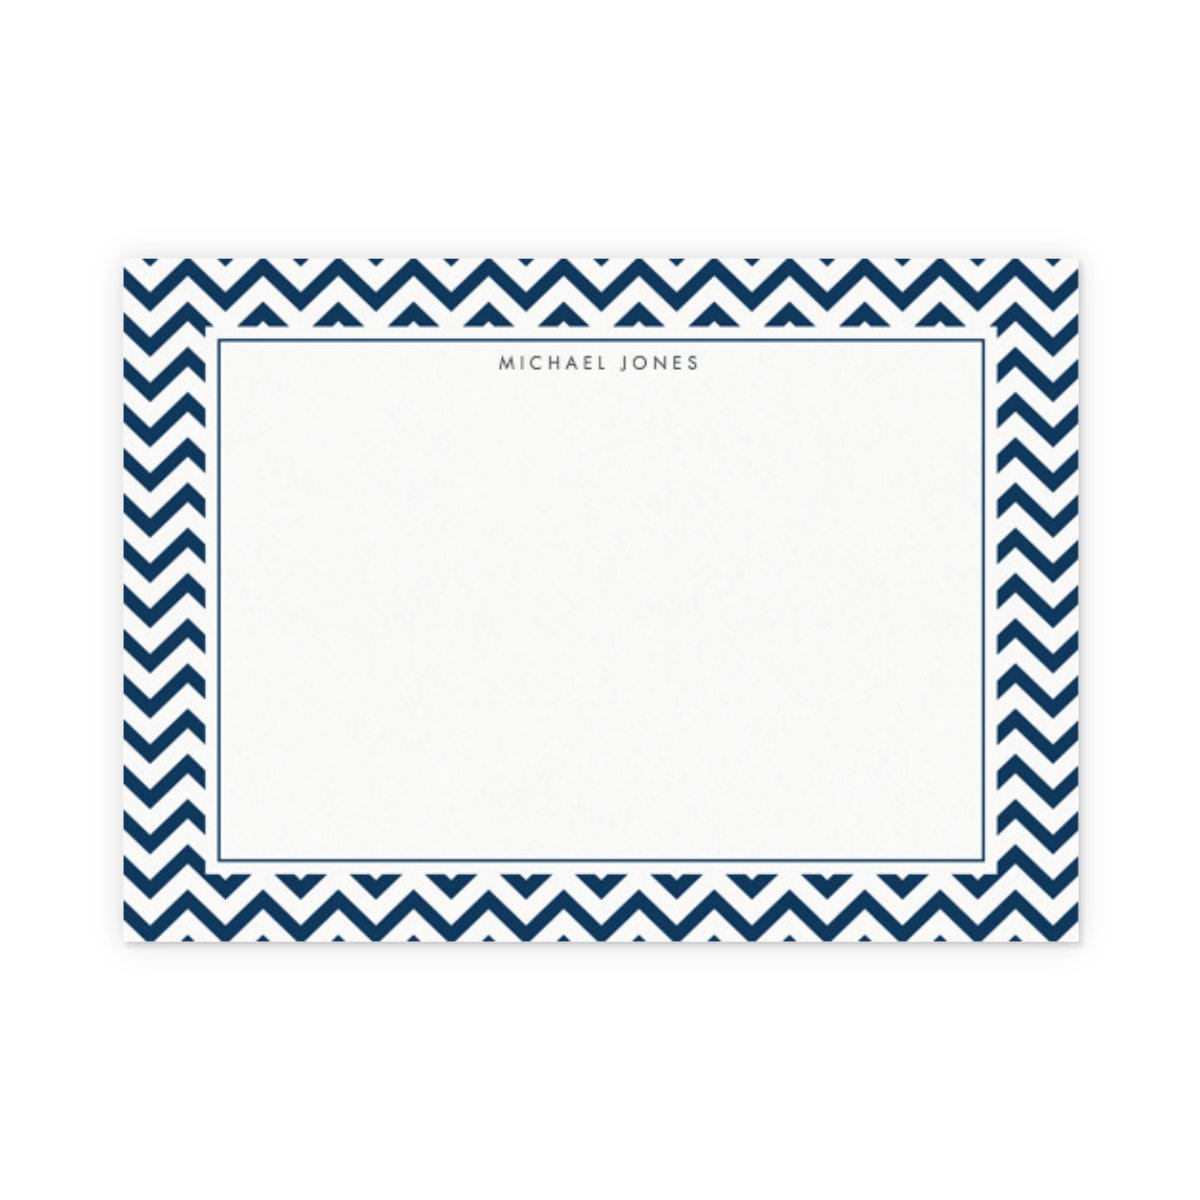 Https%3a%2f%2fwww.papier.com%2fproduct image%2f3540%2f10%2fnavy chevrons 945 front 1534932899.png?ixlib=rb 1.1